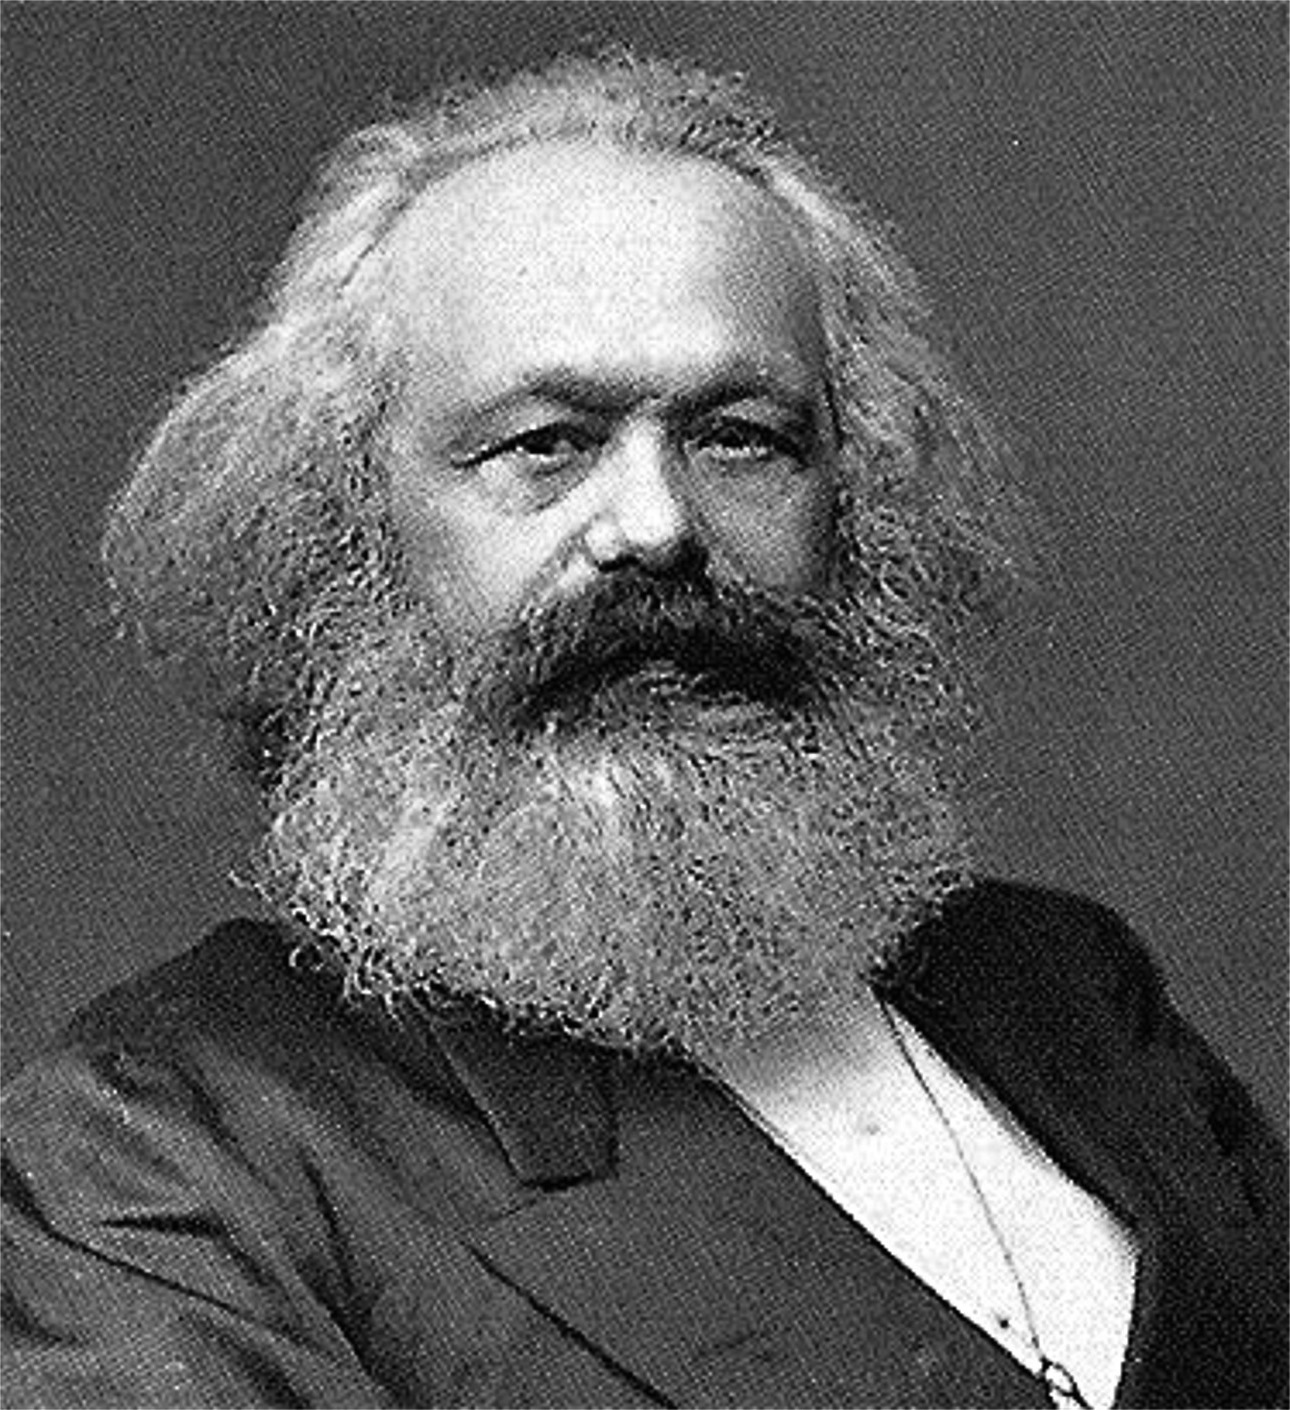 an overview of the life works of karl marx and max weber in german philosophy An outline of marxism had definitely formed in the mind of karl marx by collected works a german language abridged Émile durkheim and max weber.